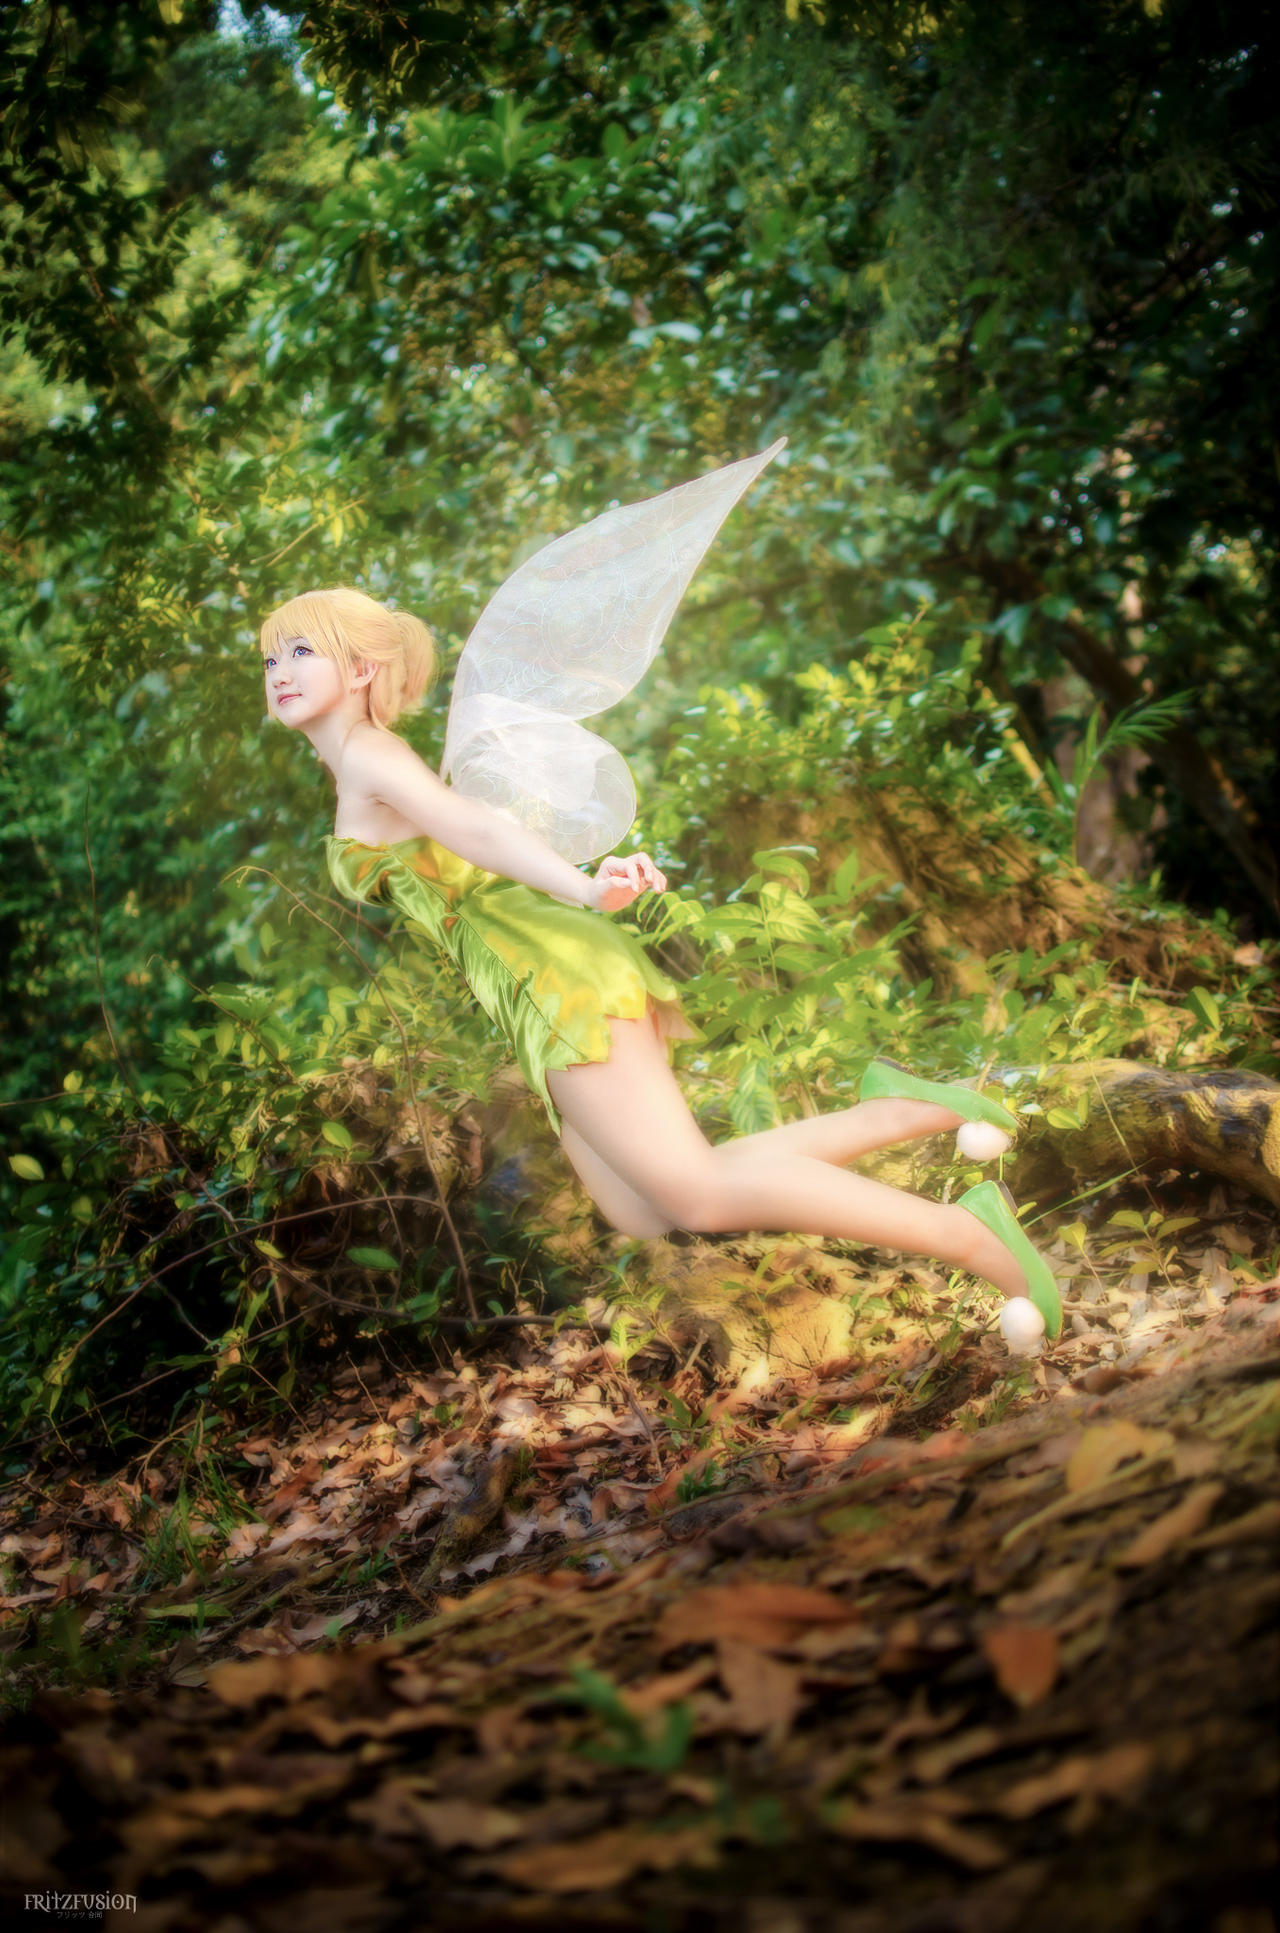 Tinker Bell by fritzfusion